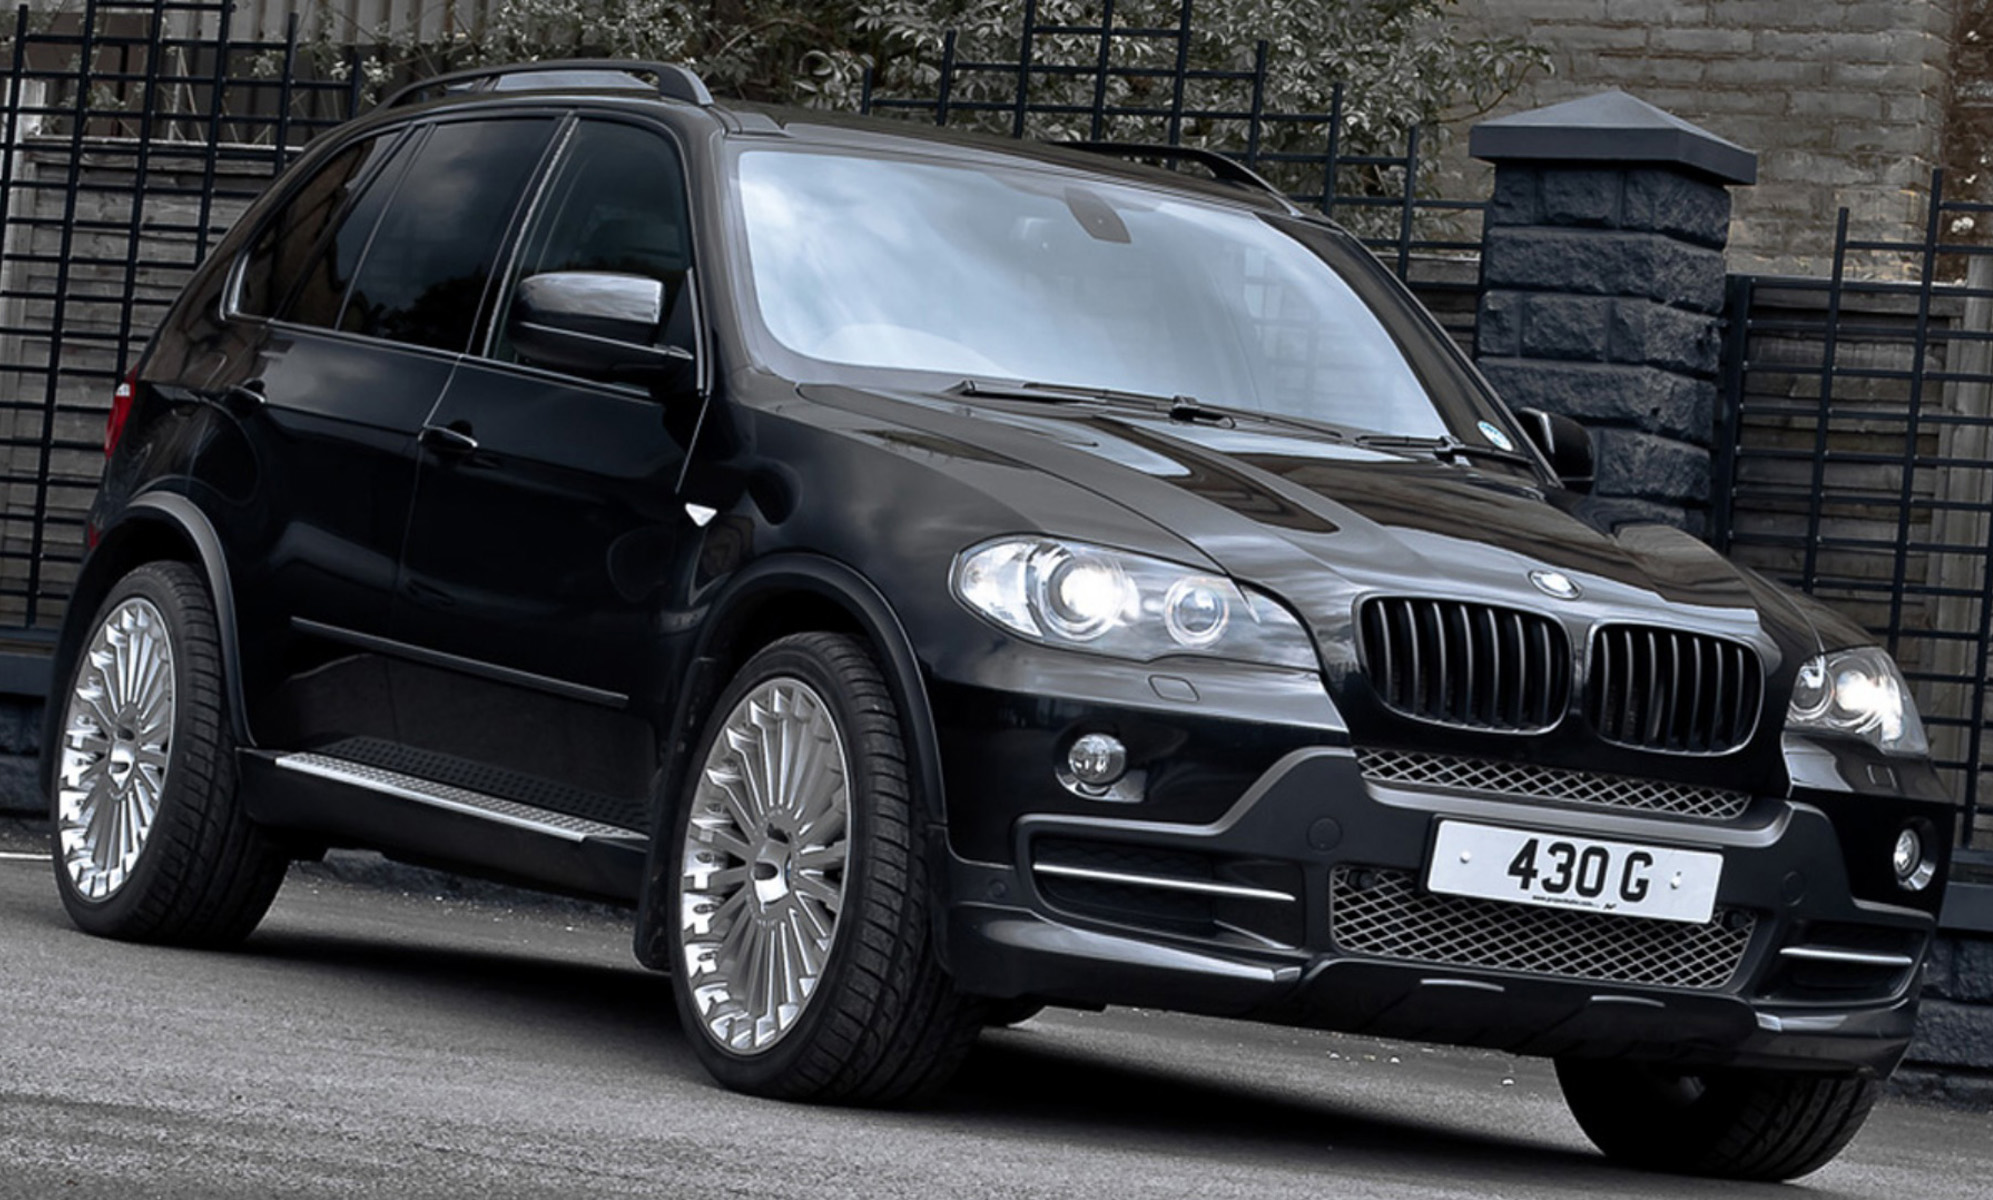 2012 bmw x5 image 13. Black Bedroom Furniture Sets. Home Design Ideas